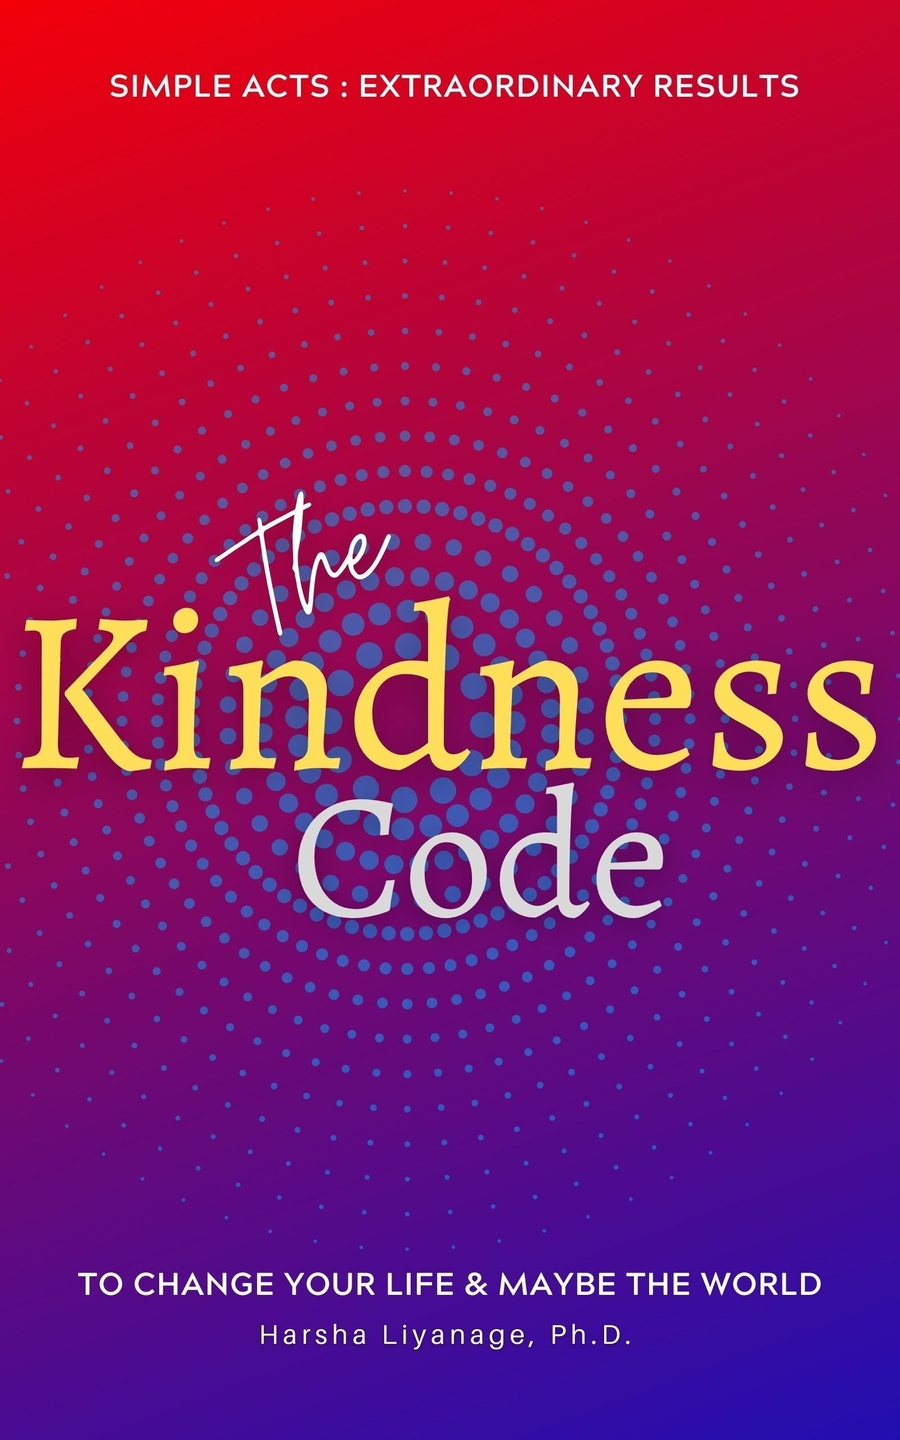 The Kindness Code, Book Cover.